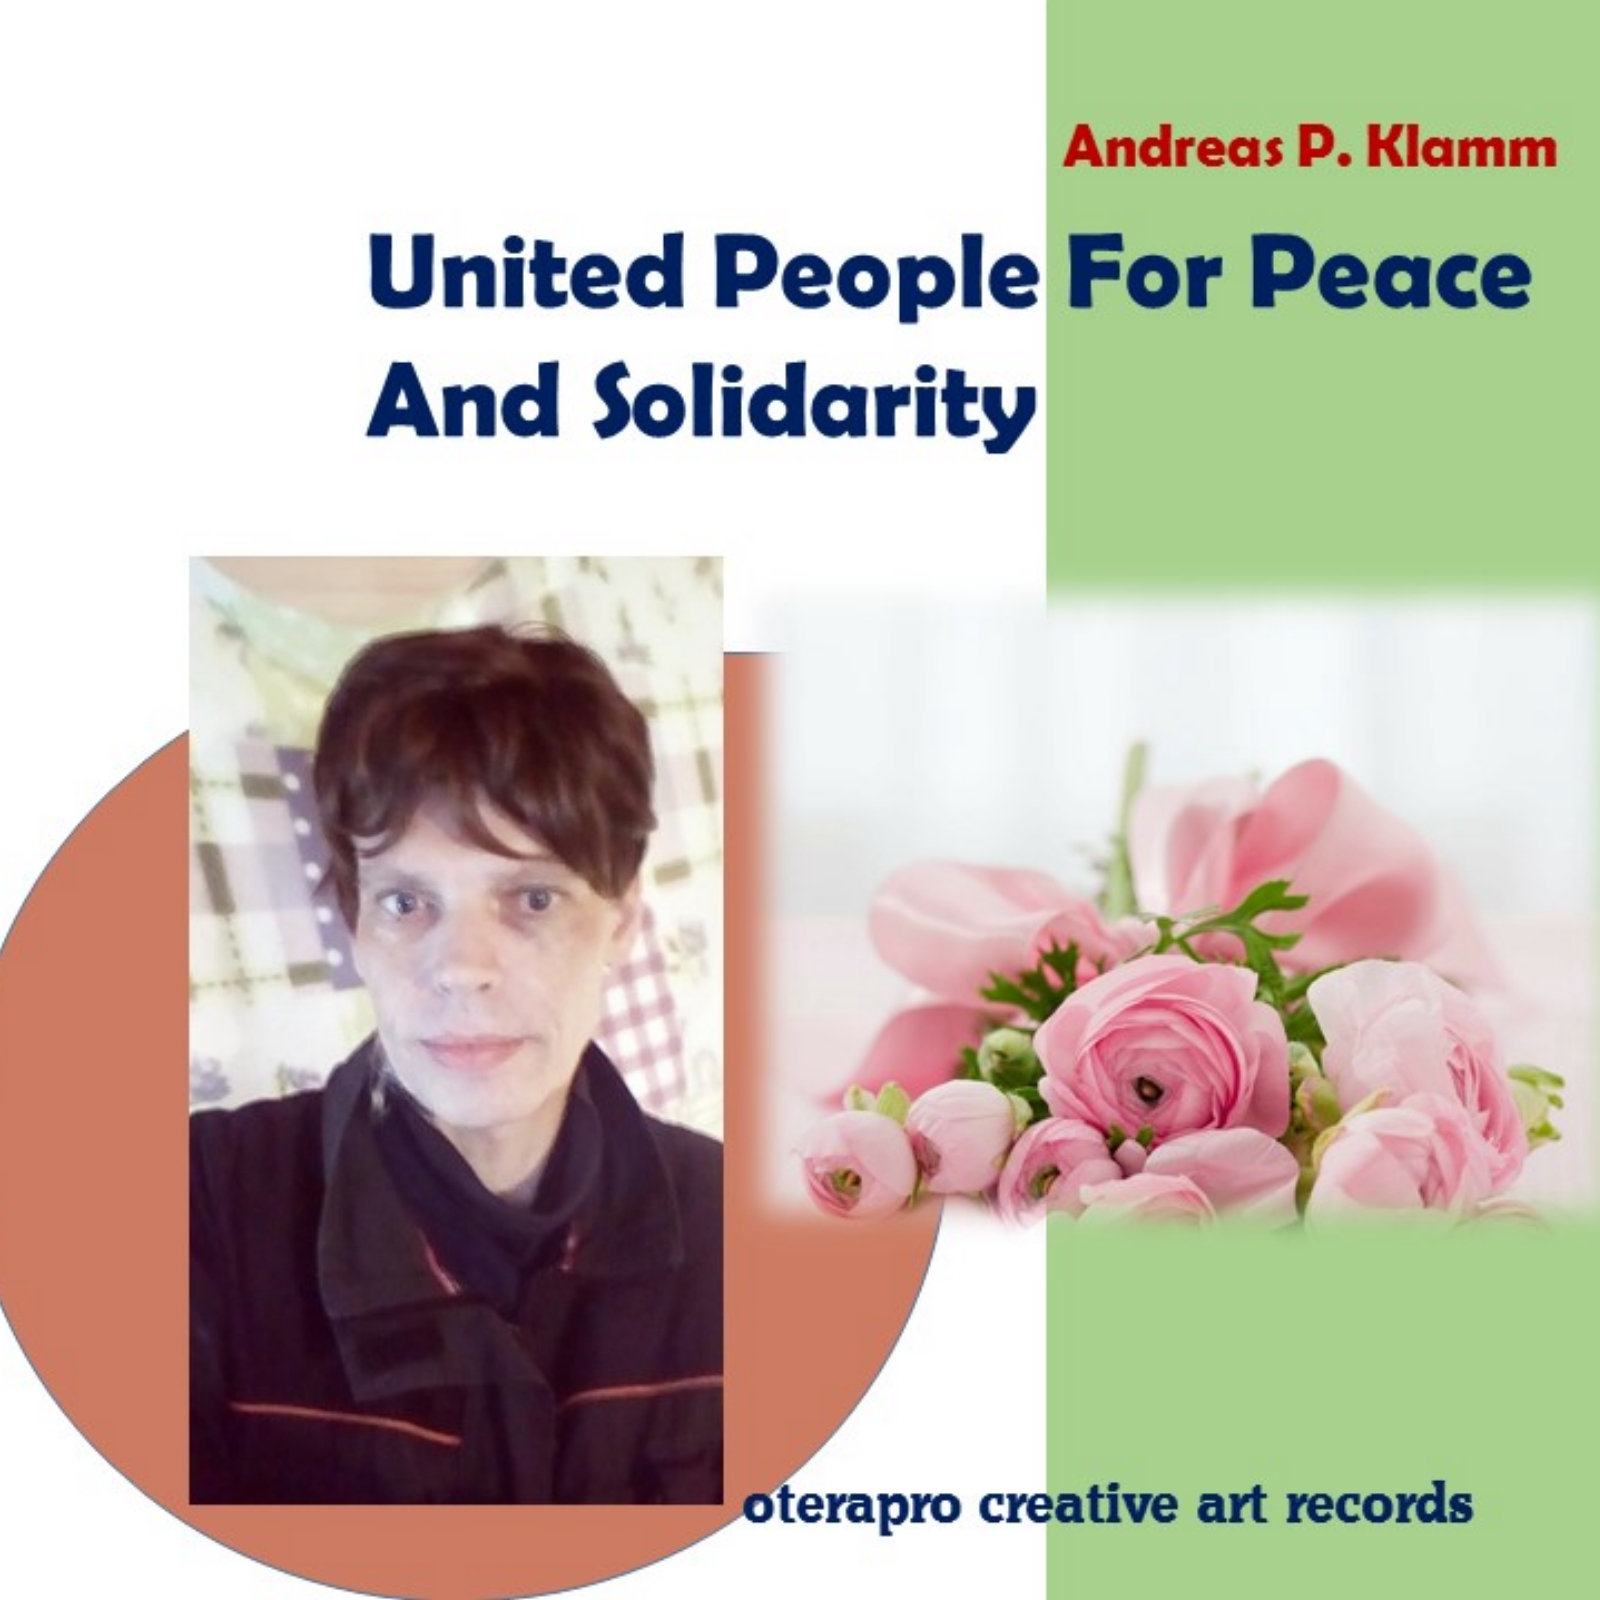 United People For Peace And Solidarity, Music And Artwork by Andreas P. Klamm